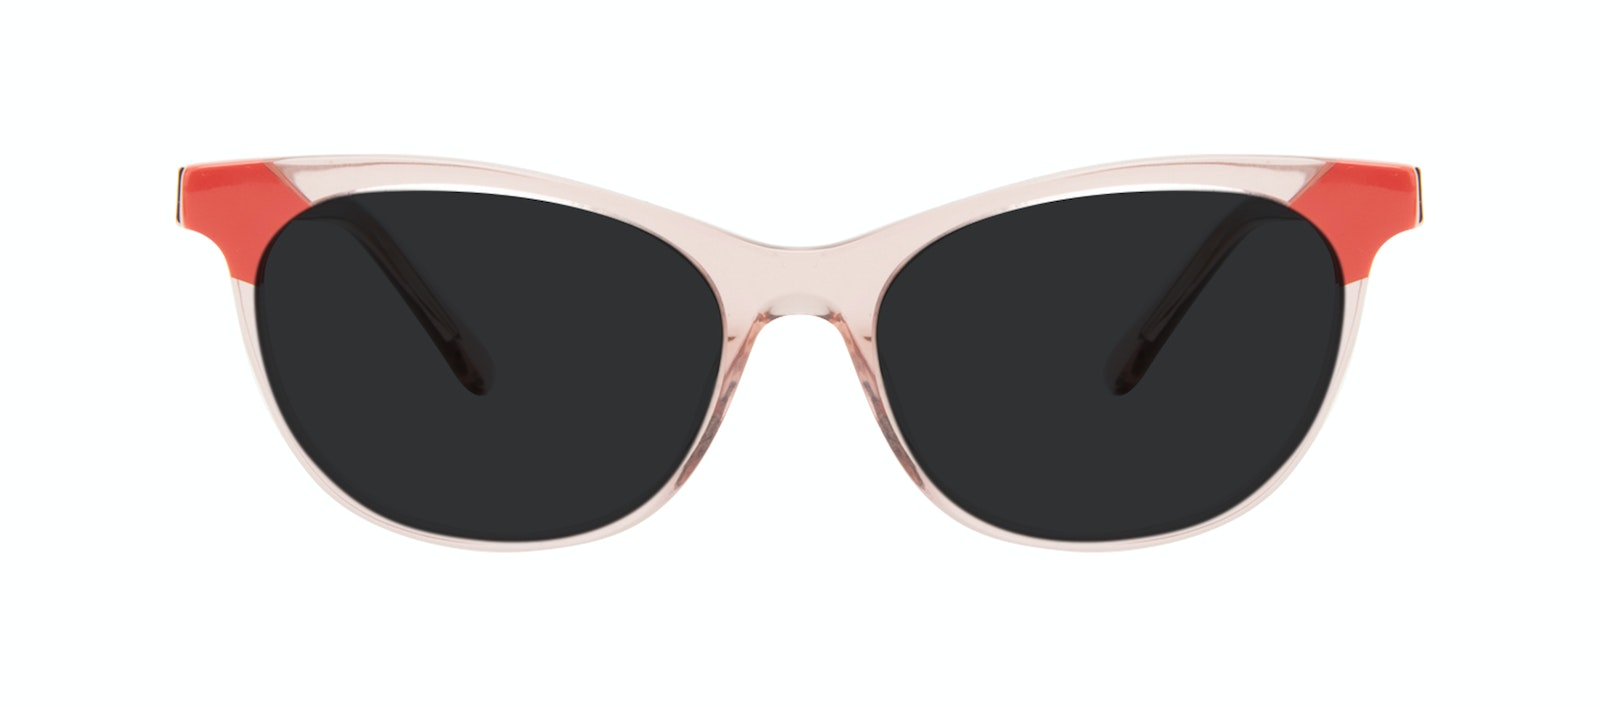 Affordable Fashion Glasses Cat Eye Sunglasses Women Witty Pink Coral Front